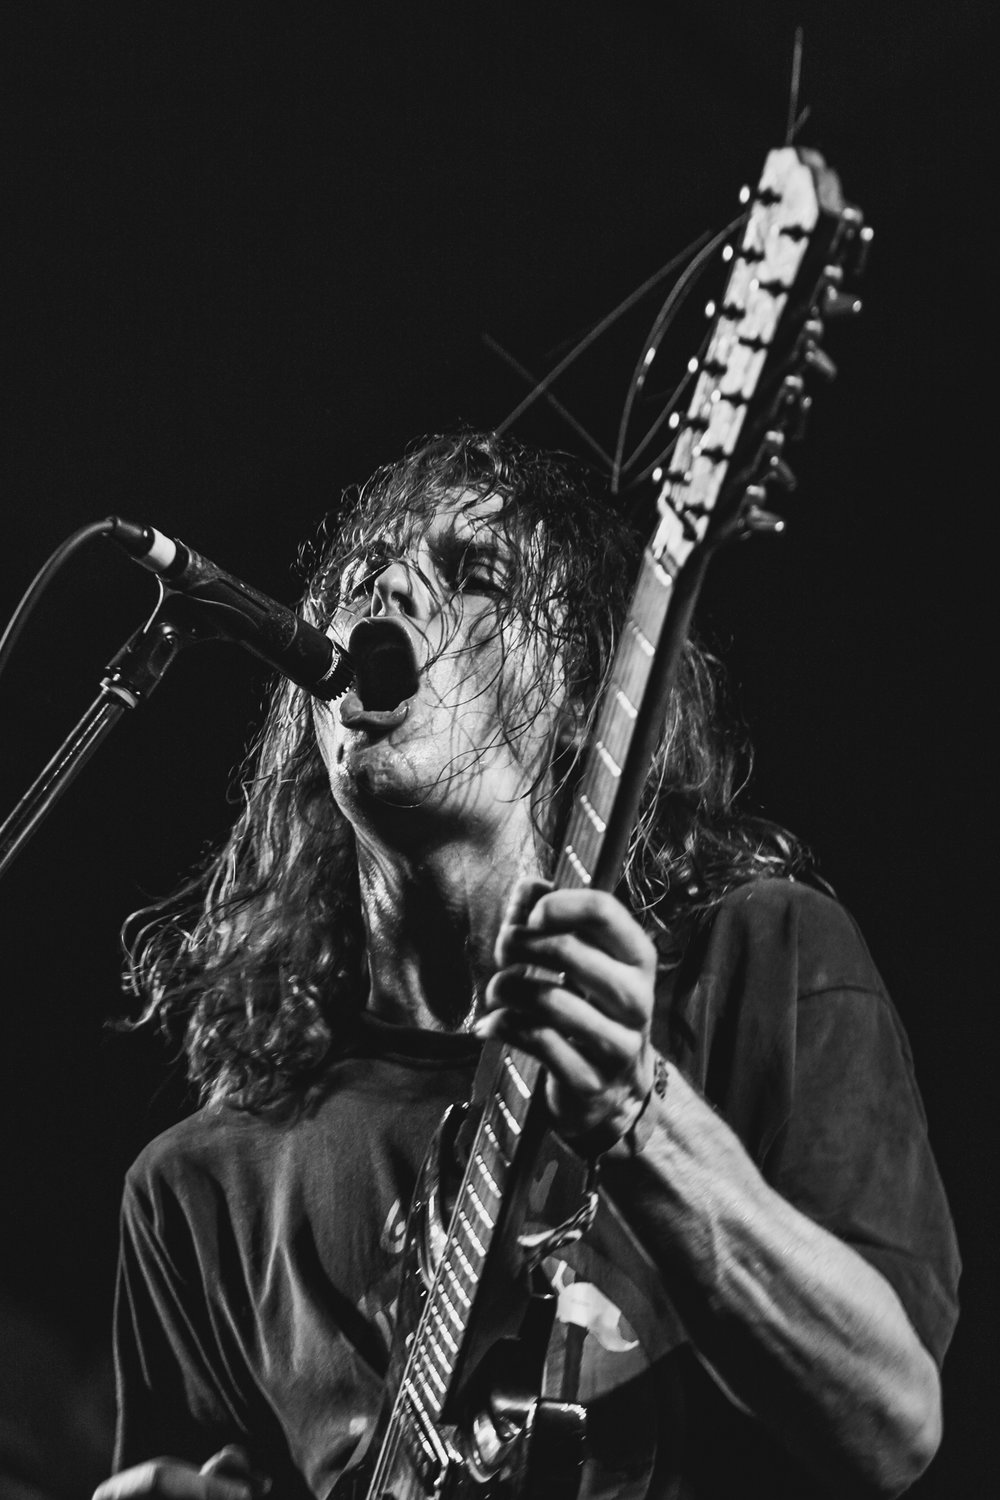 Mitch Lowe Photo - Gizzfest 2016 - King Gizzard & The Lizard Wizard-6172.jpg